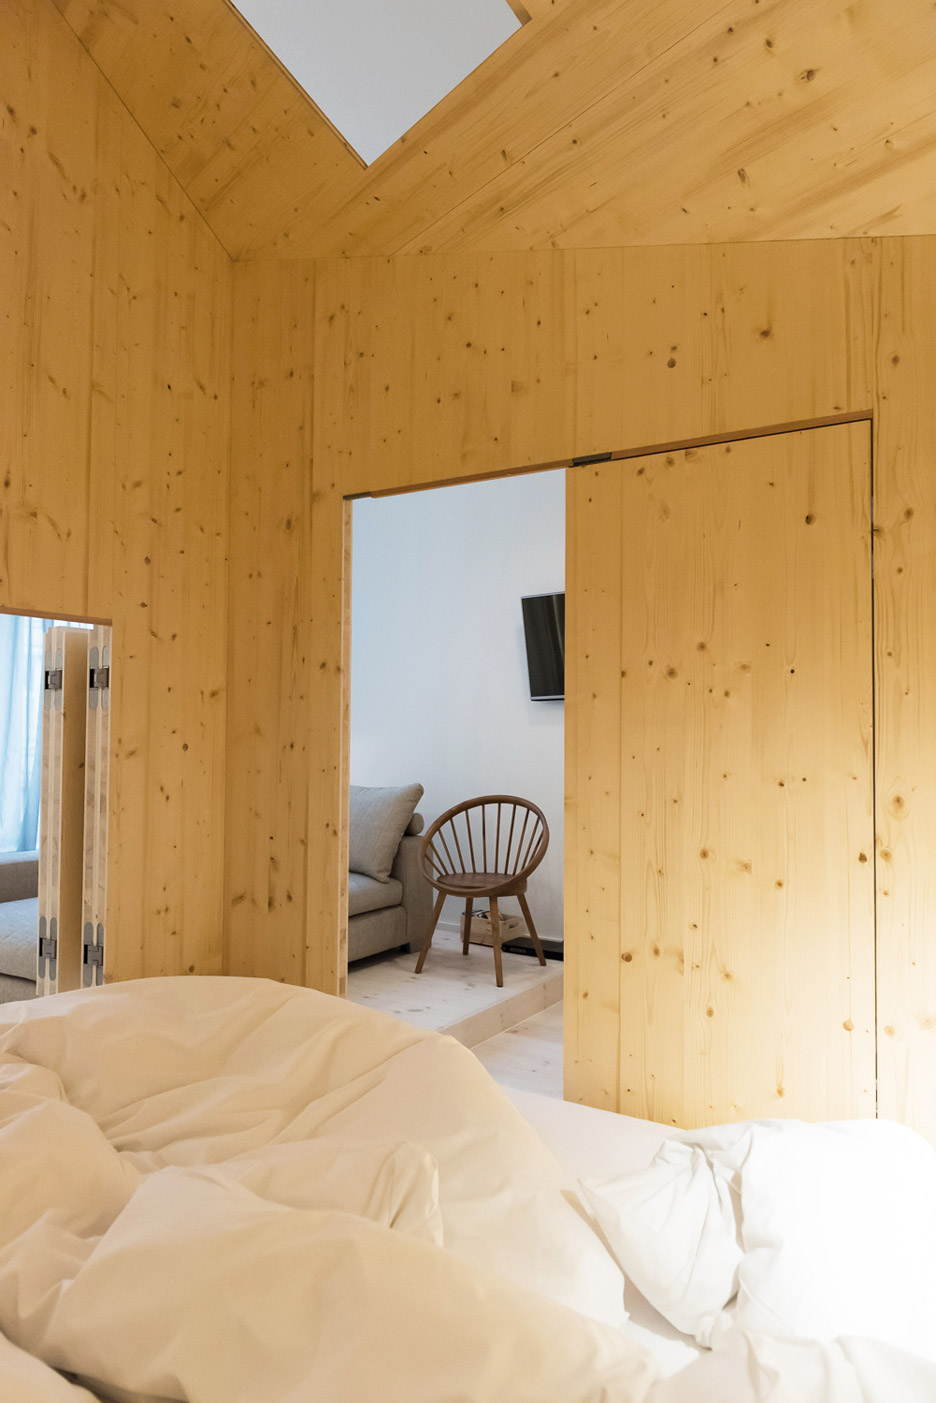 Michelberger hotel room by Sigurd Larsen